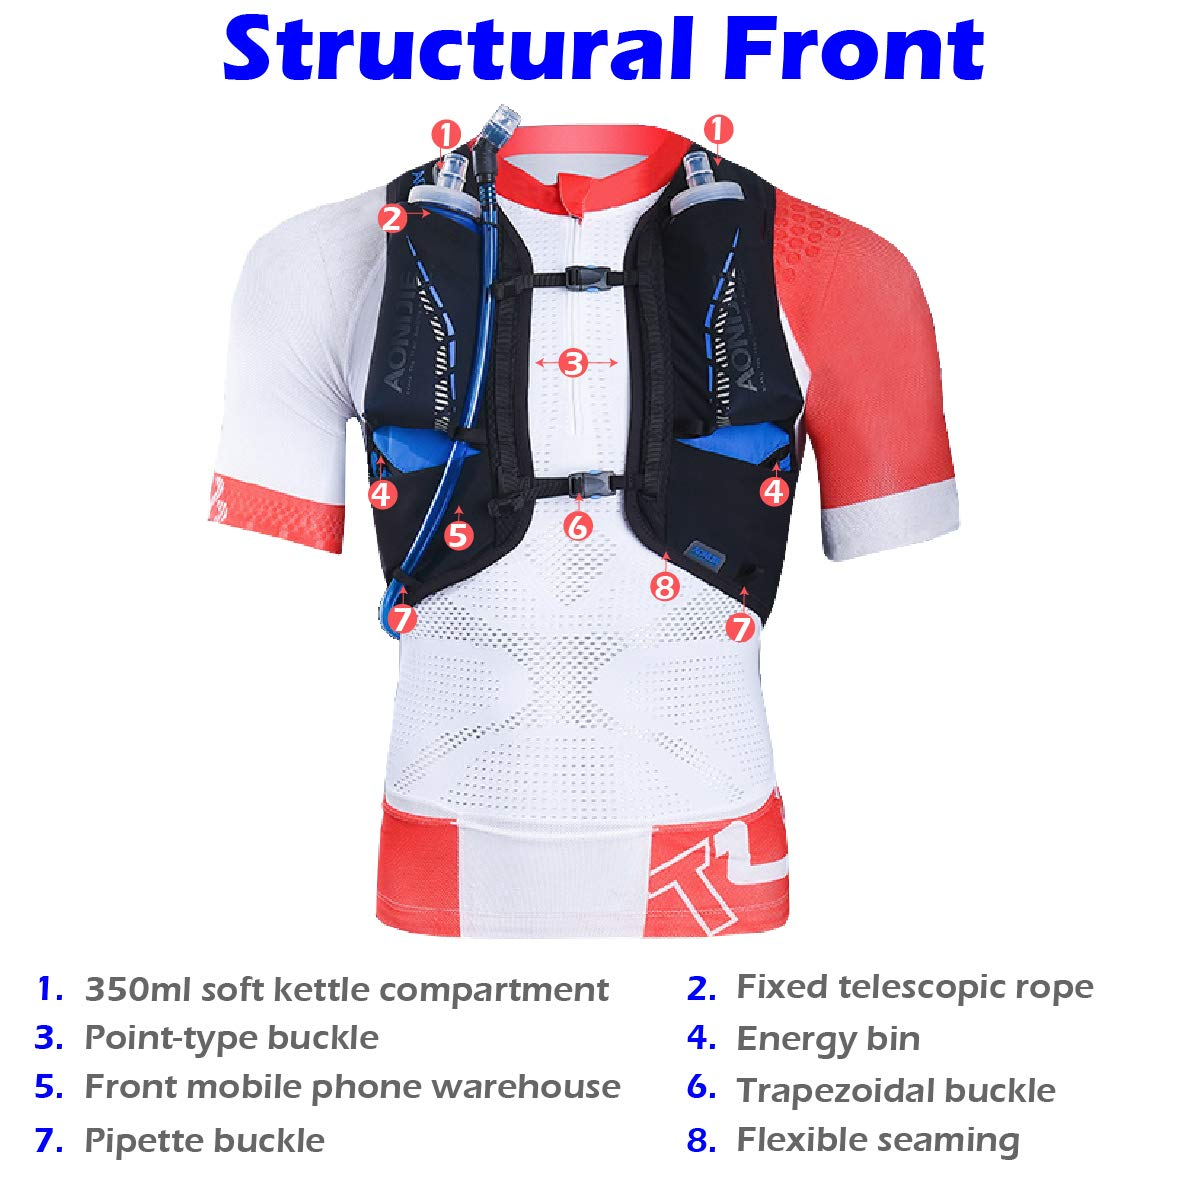 TRIWONDER Hydration Vest 18L Ultra Trail Running Backpack Pack Marathon Vest Outdoor Runner Race Vest